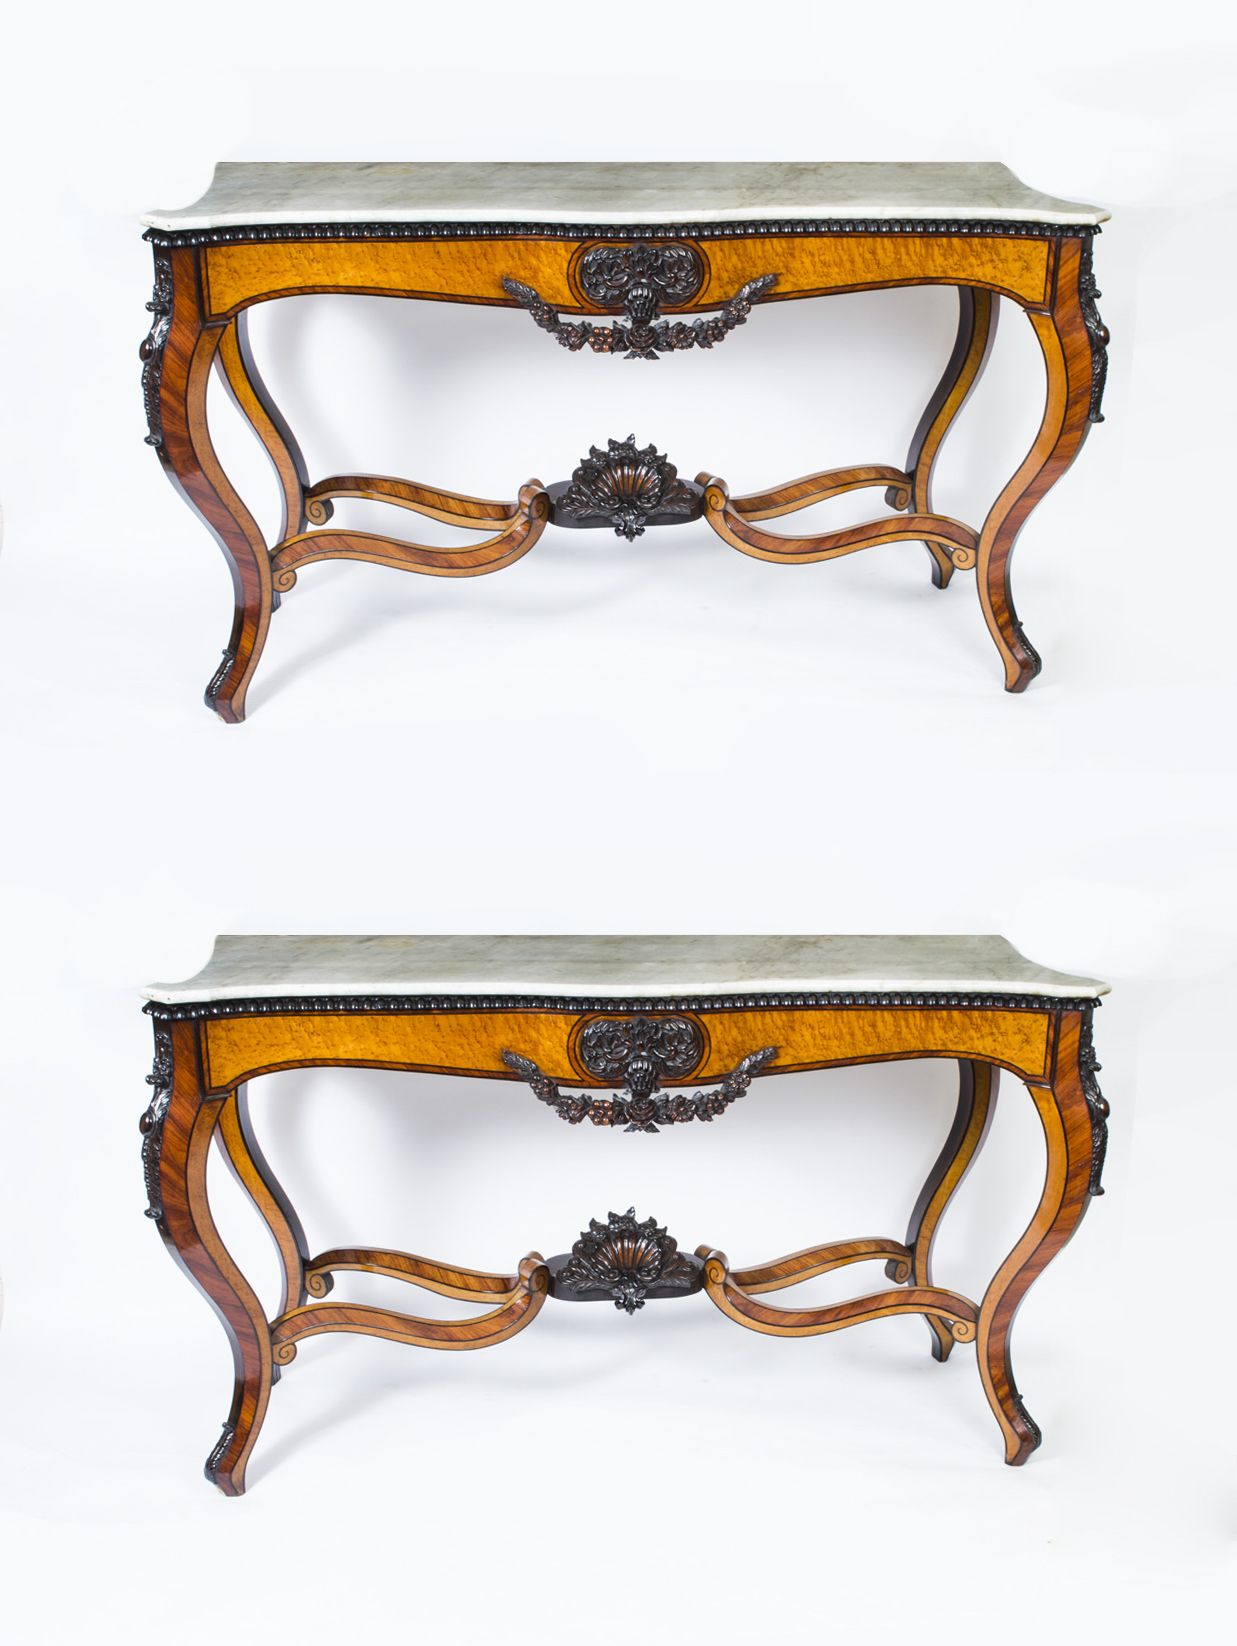 Antique pair 5ft6 sicilian marble top console tables c1820 for 5 foot console table